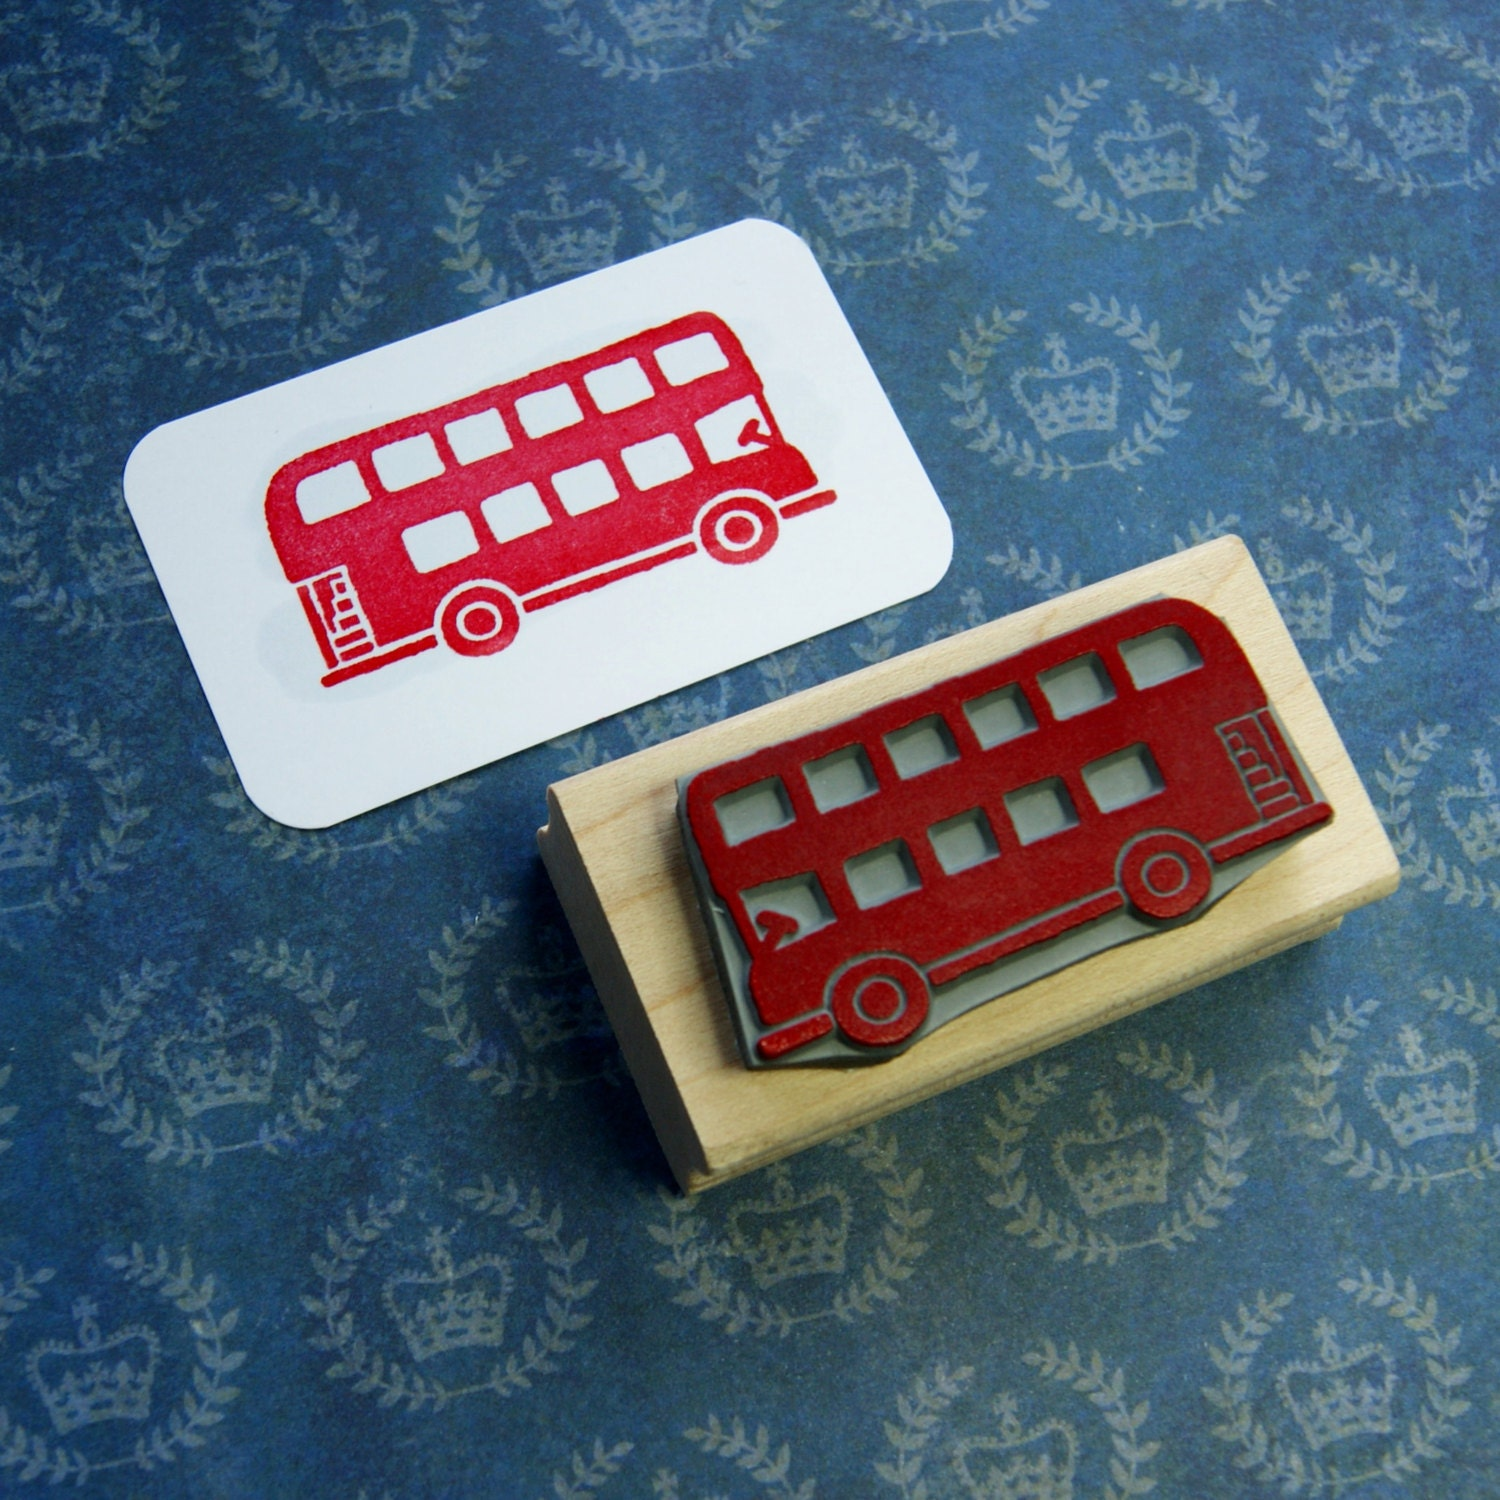 London Bus Rubber Stamp - London Transport - Red Bus Rubber Stamp ...